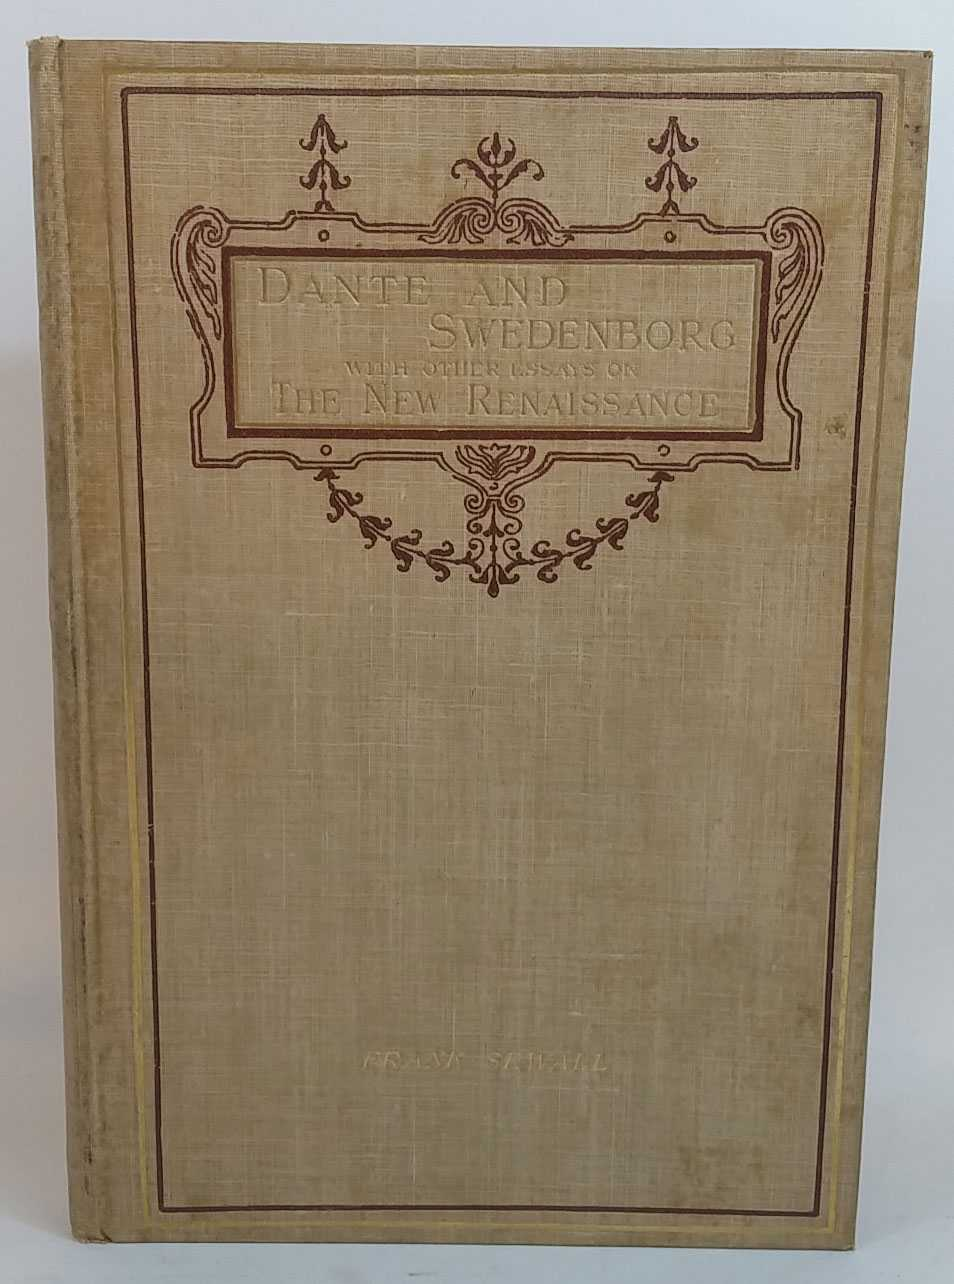 FRANK SEWALL - Dante and Swedenborg: With Other Essays on the New Renaissance